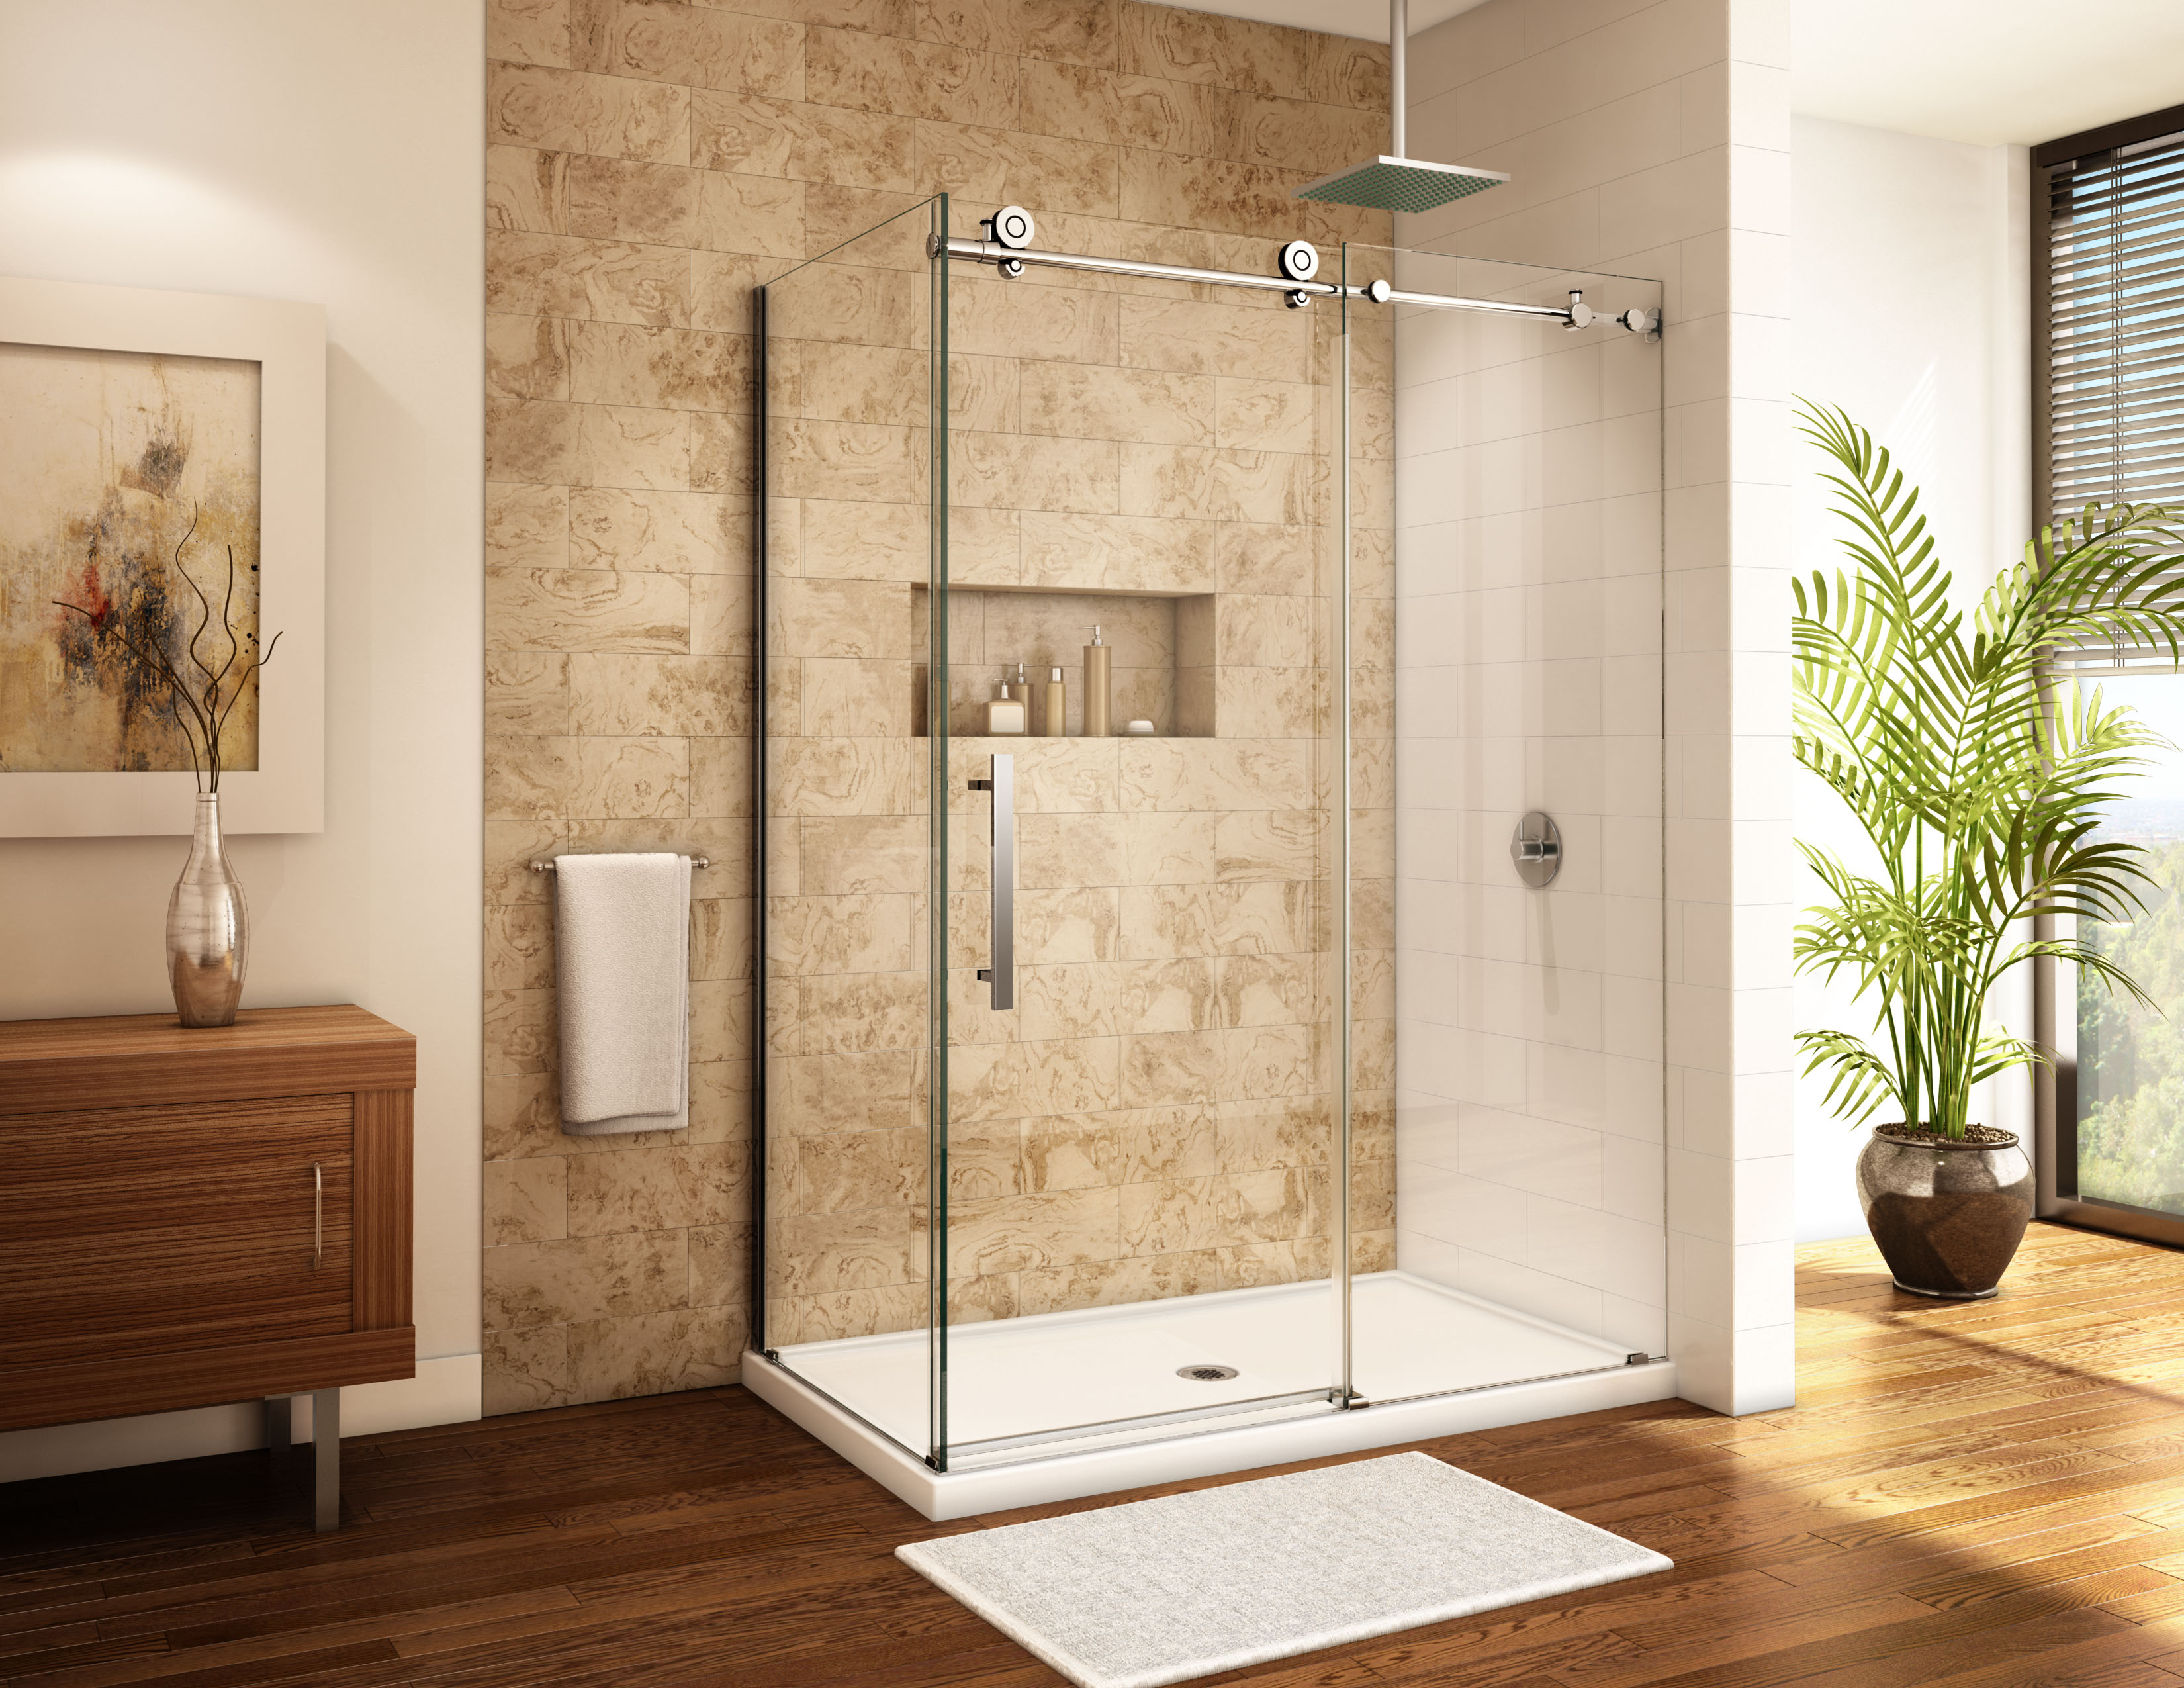 Fleurco ABF3672 Quad 36 x 72 Inch In-Line Acrylic Shower Base with ...